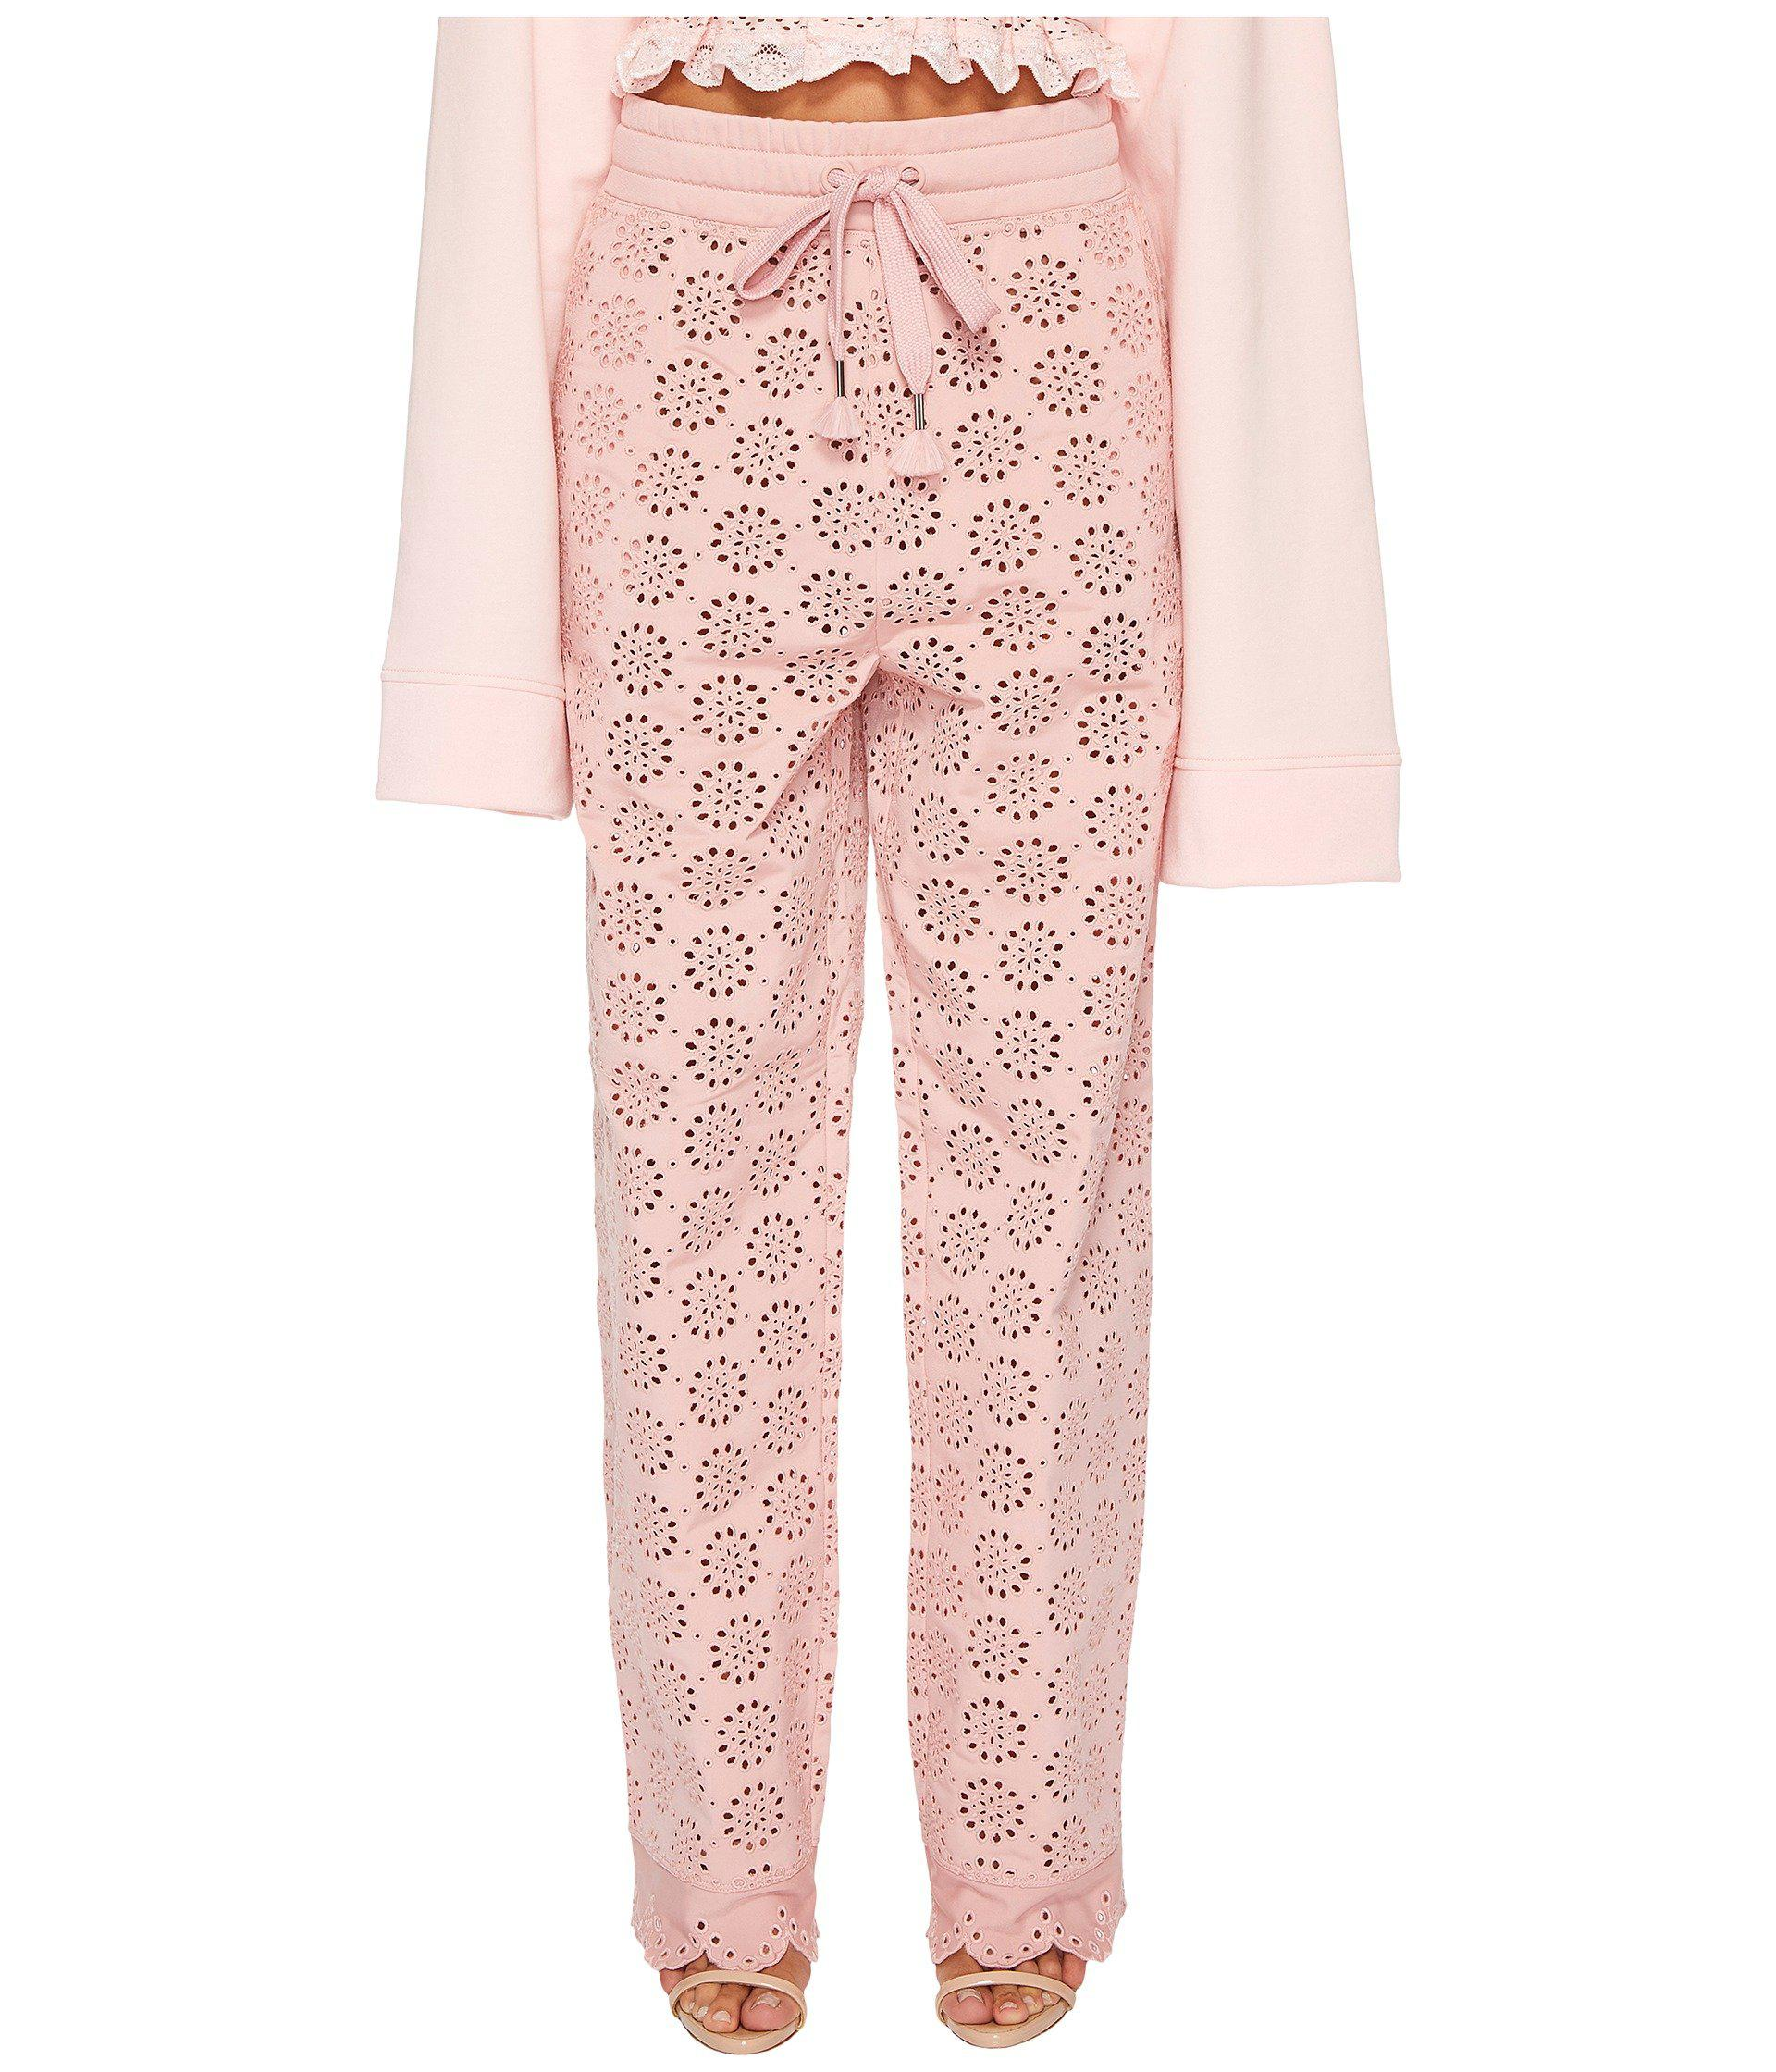 50e71ad3 PUMA Fenty Die Cut Embroidered Pants in Pink - Lyst